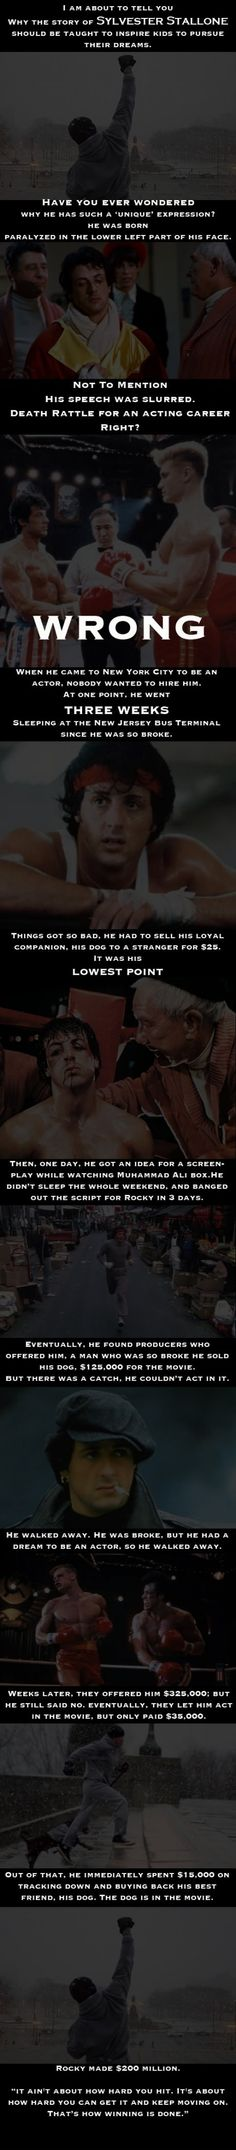 Sylvester Stallone's story should be told to everyone